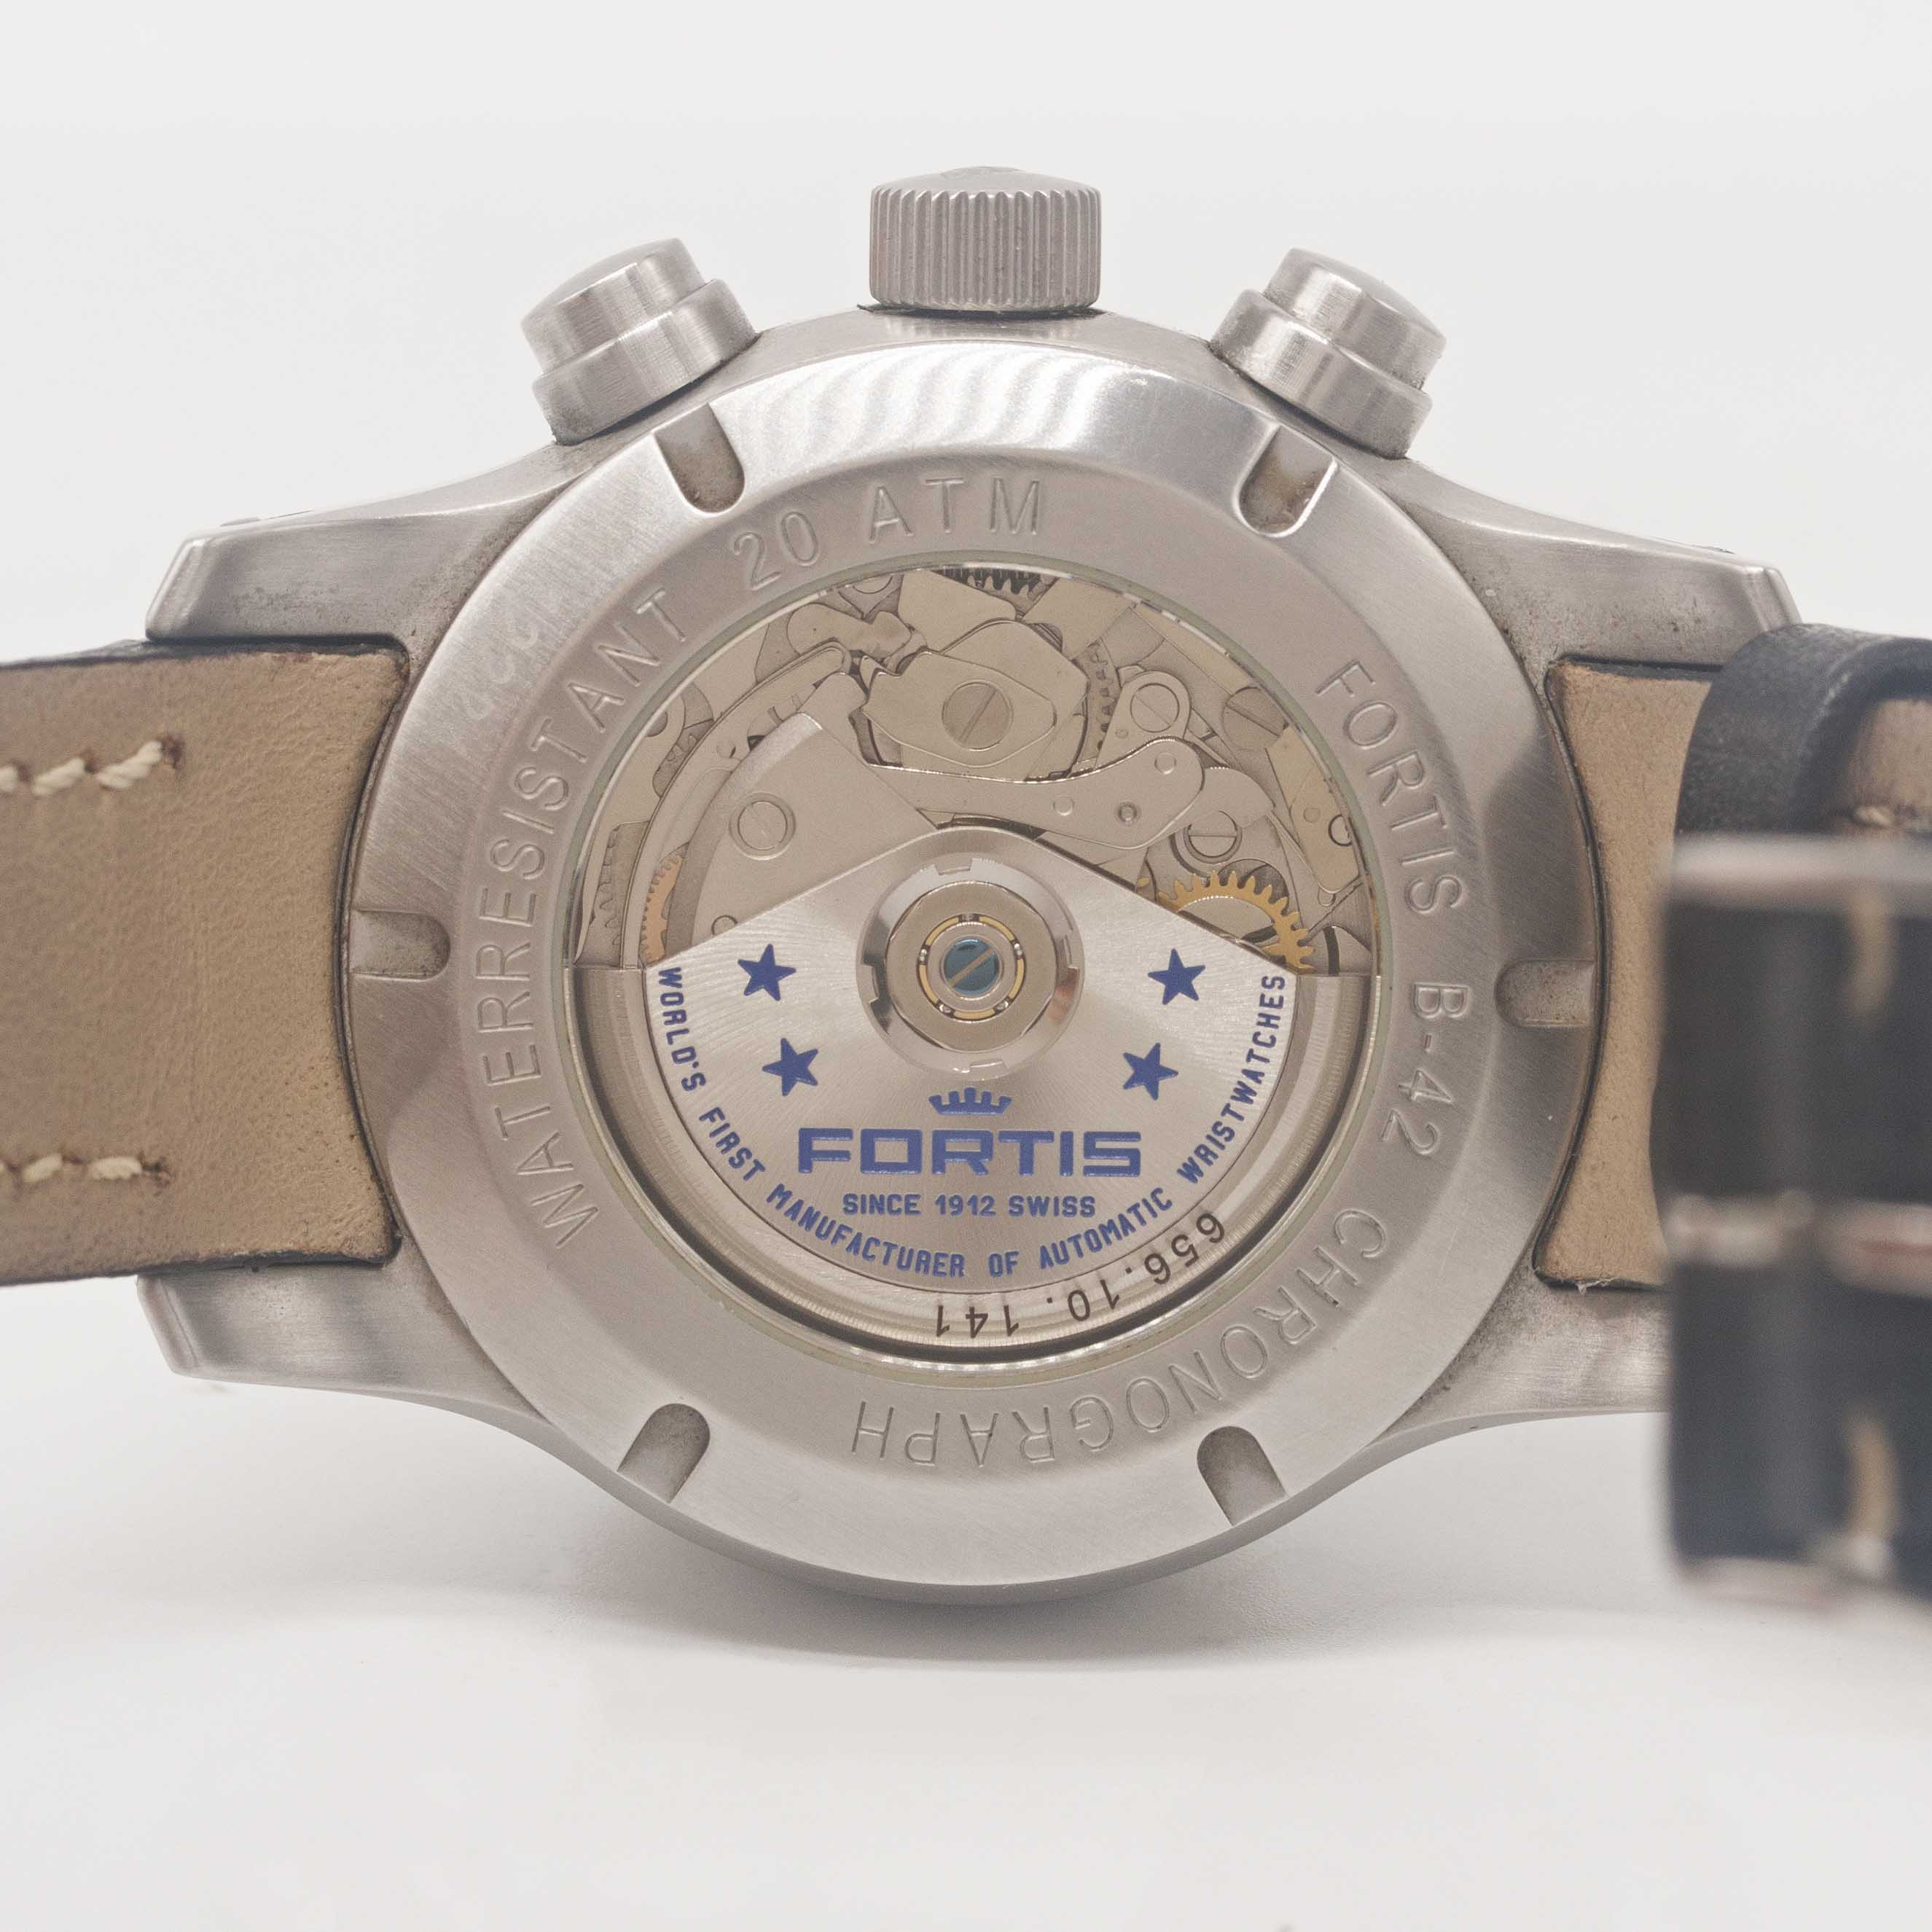 Lot 37 - A GENTLEMAN'S STAINLESS STEEL FORTIS B-42 AUTOMATIC CHRONOGRAPH WRIST WATCH DATED 2008, REF. 656.